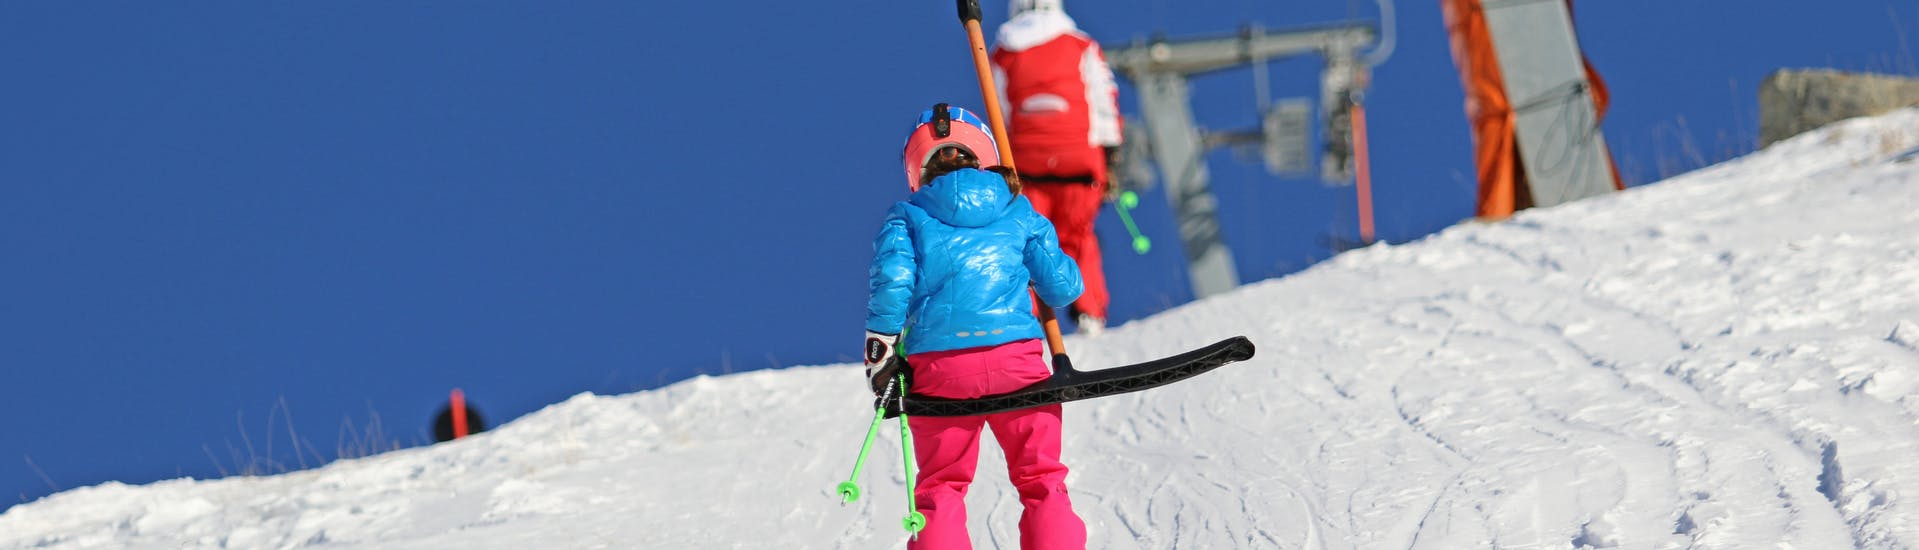 Private Ski Lessons for Kids in Serfaus-Fiss-Ladis with Skischule Pfunds - Hero image